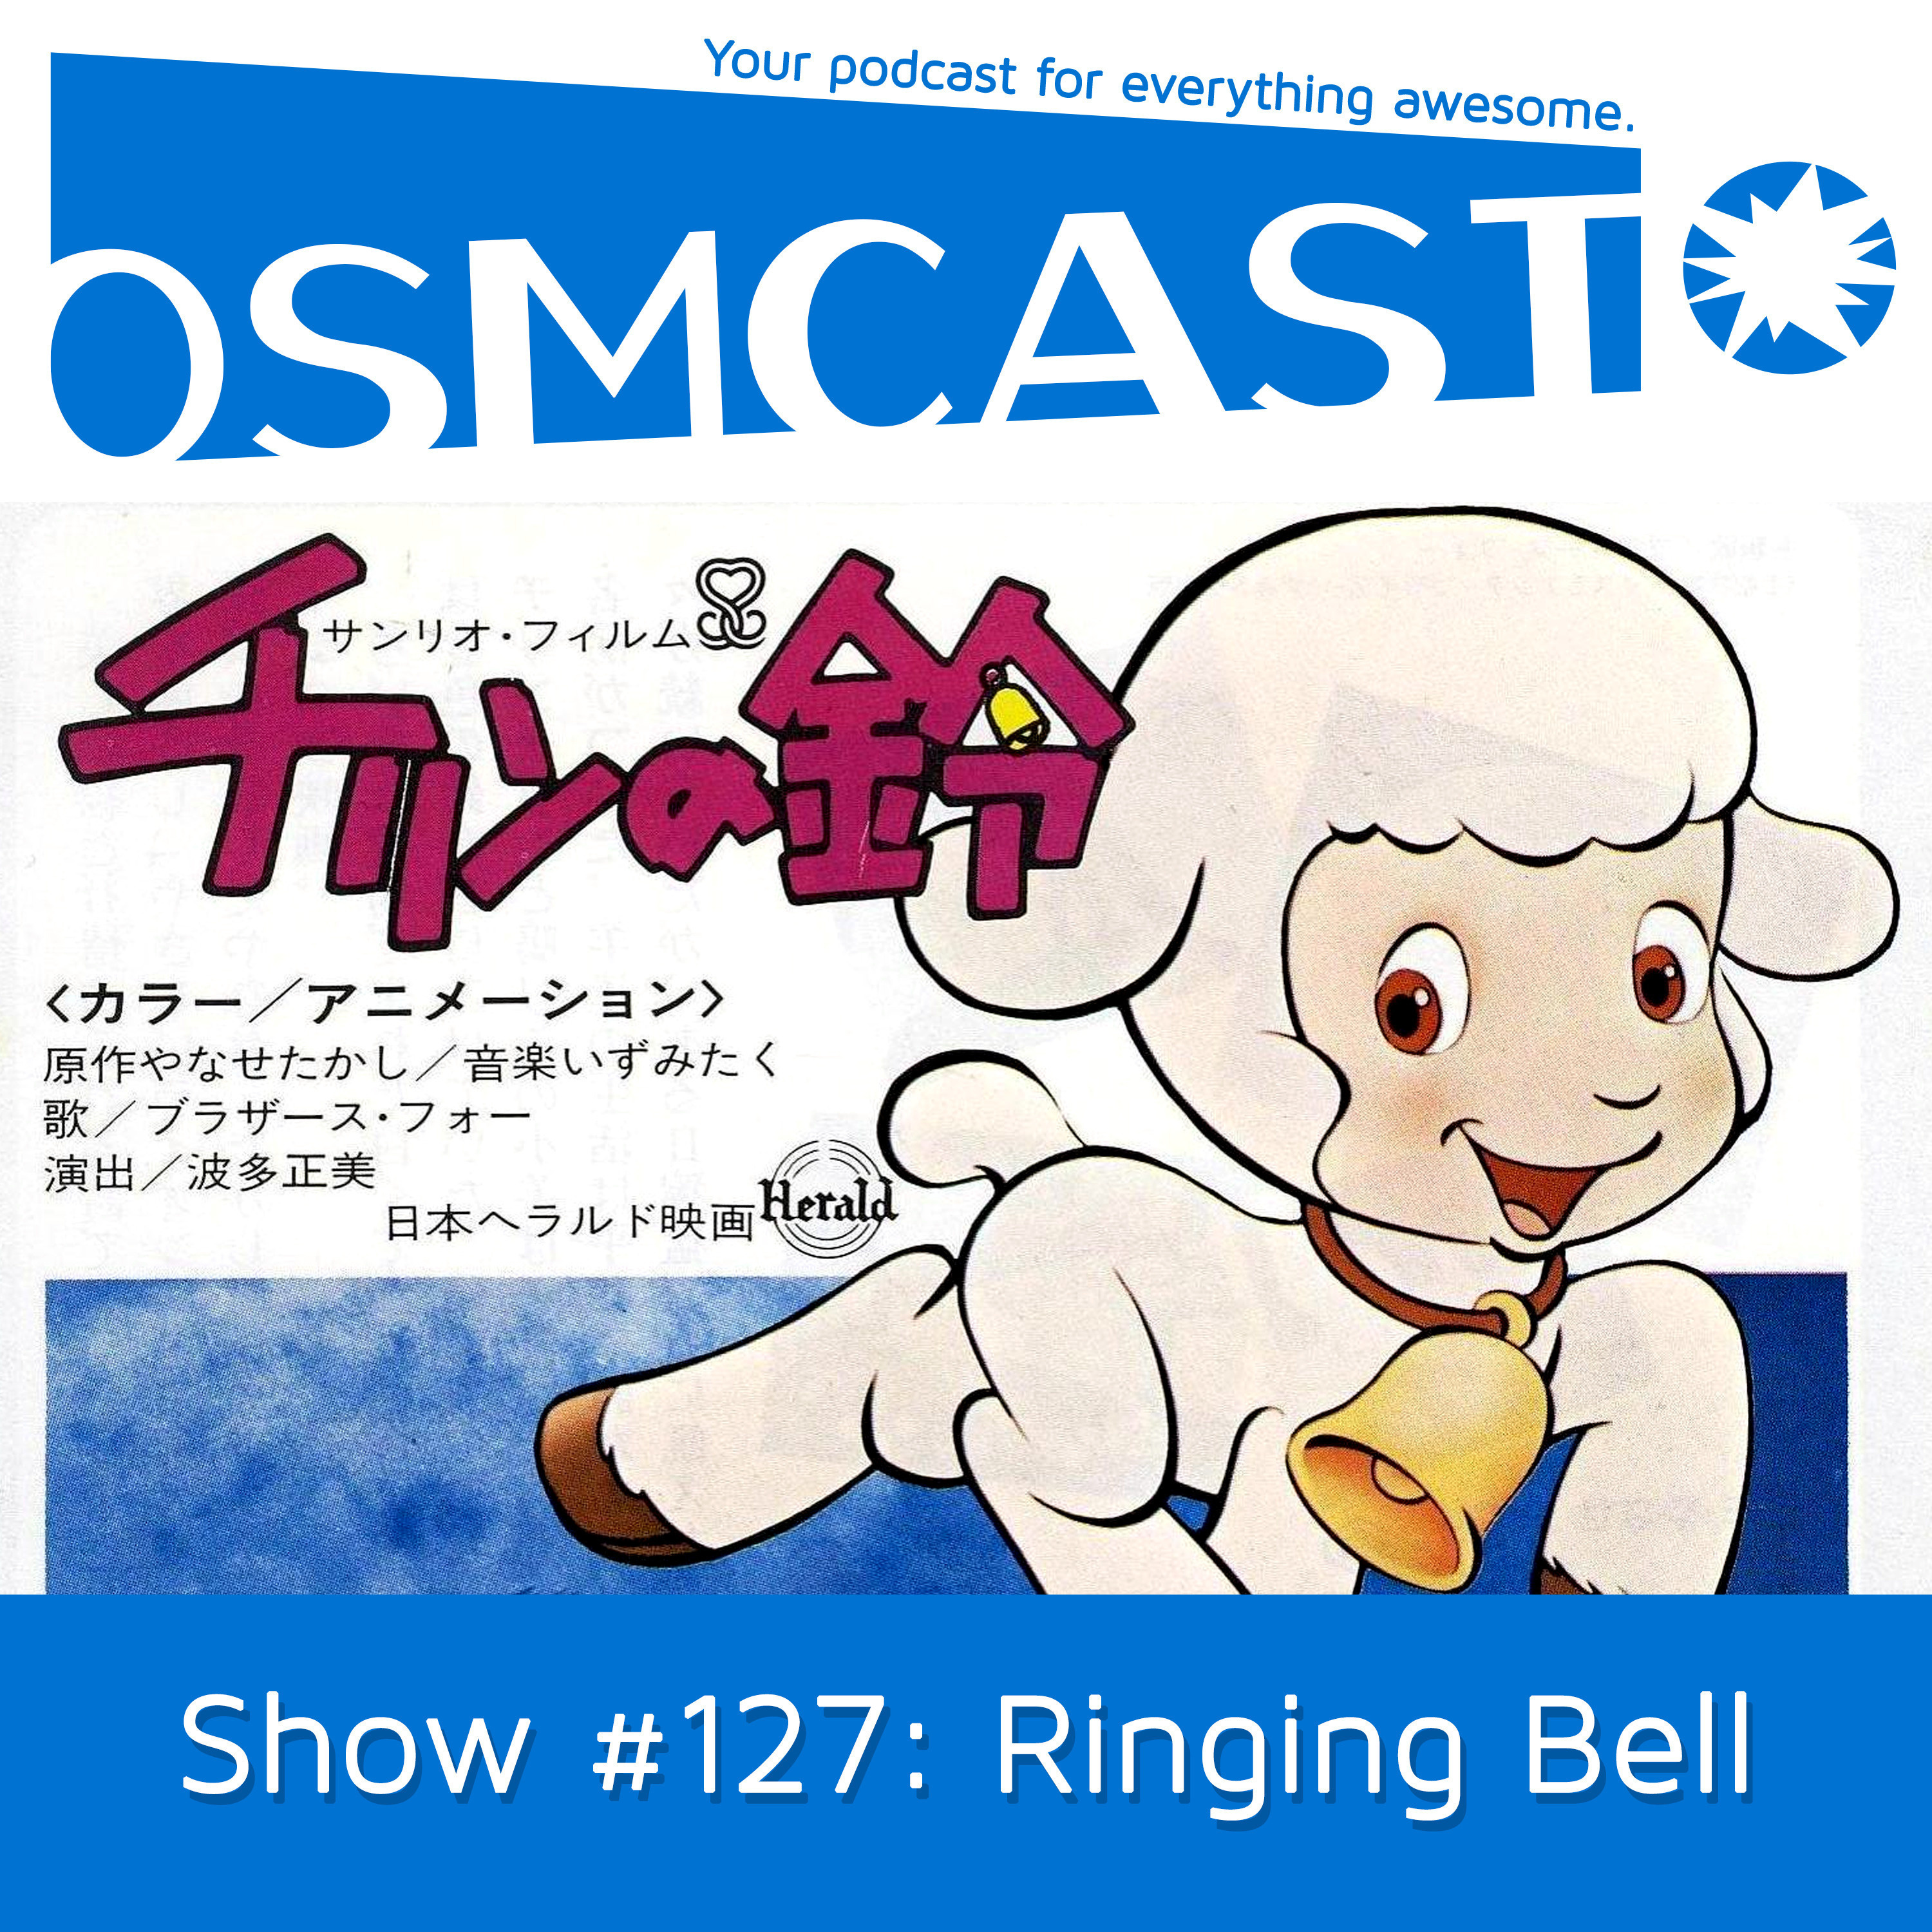 OSMcast! Anime, Video Games, Interviews, and More! | Podbay